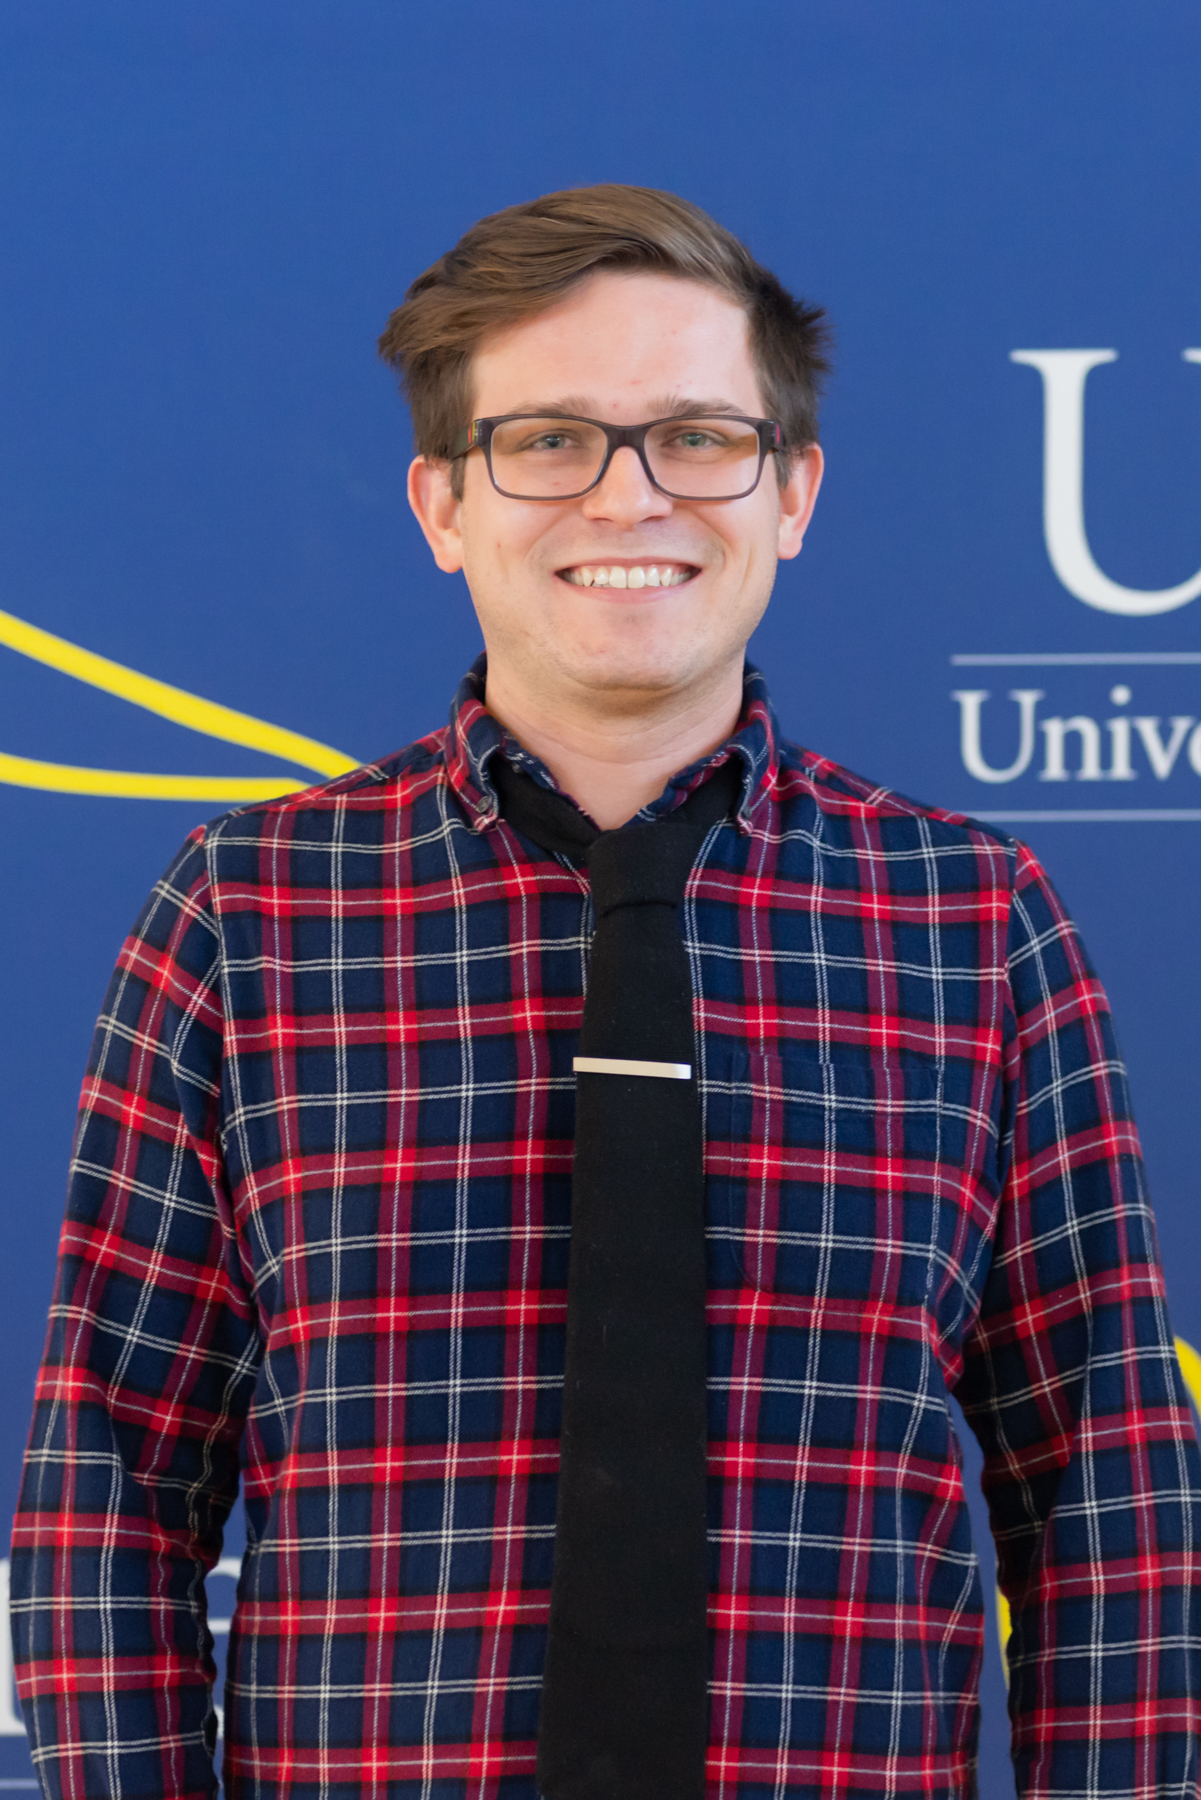 Michael Milgie competes in the UCI's Grad Slam Finals on Fri. 3/8